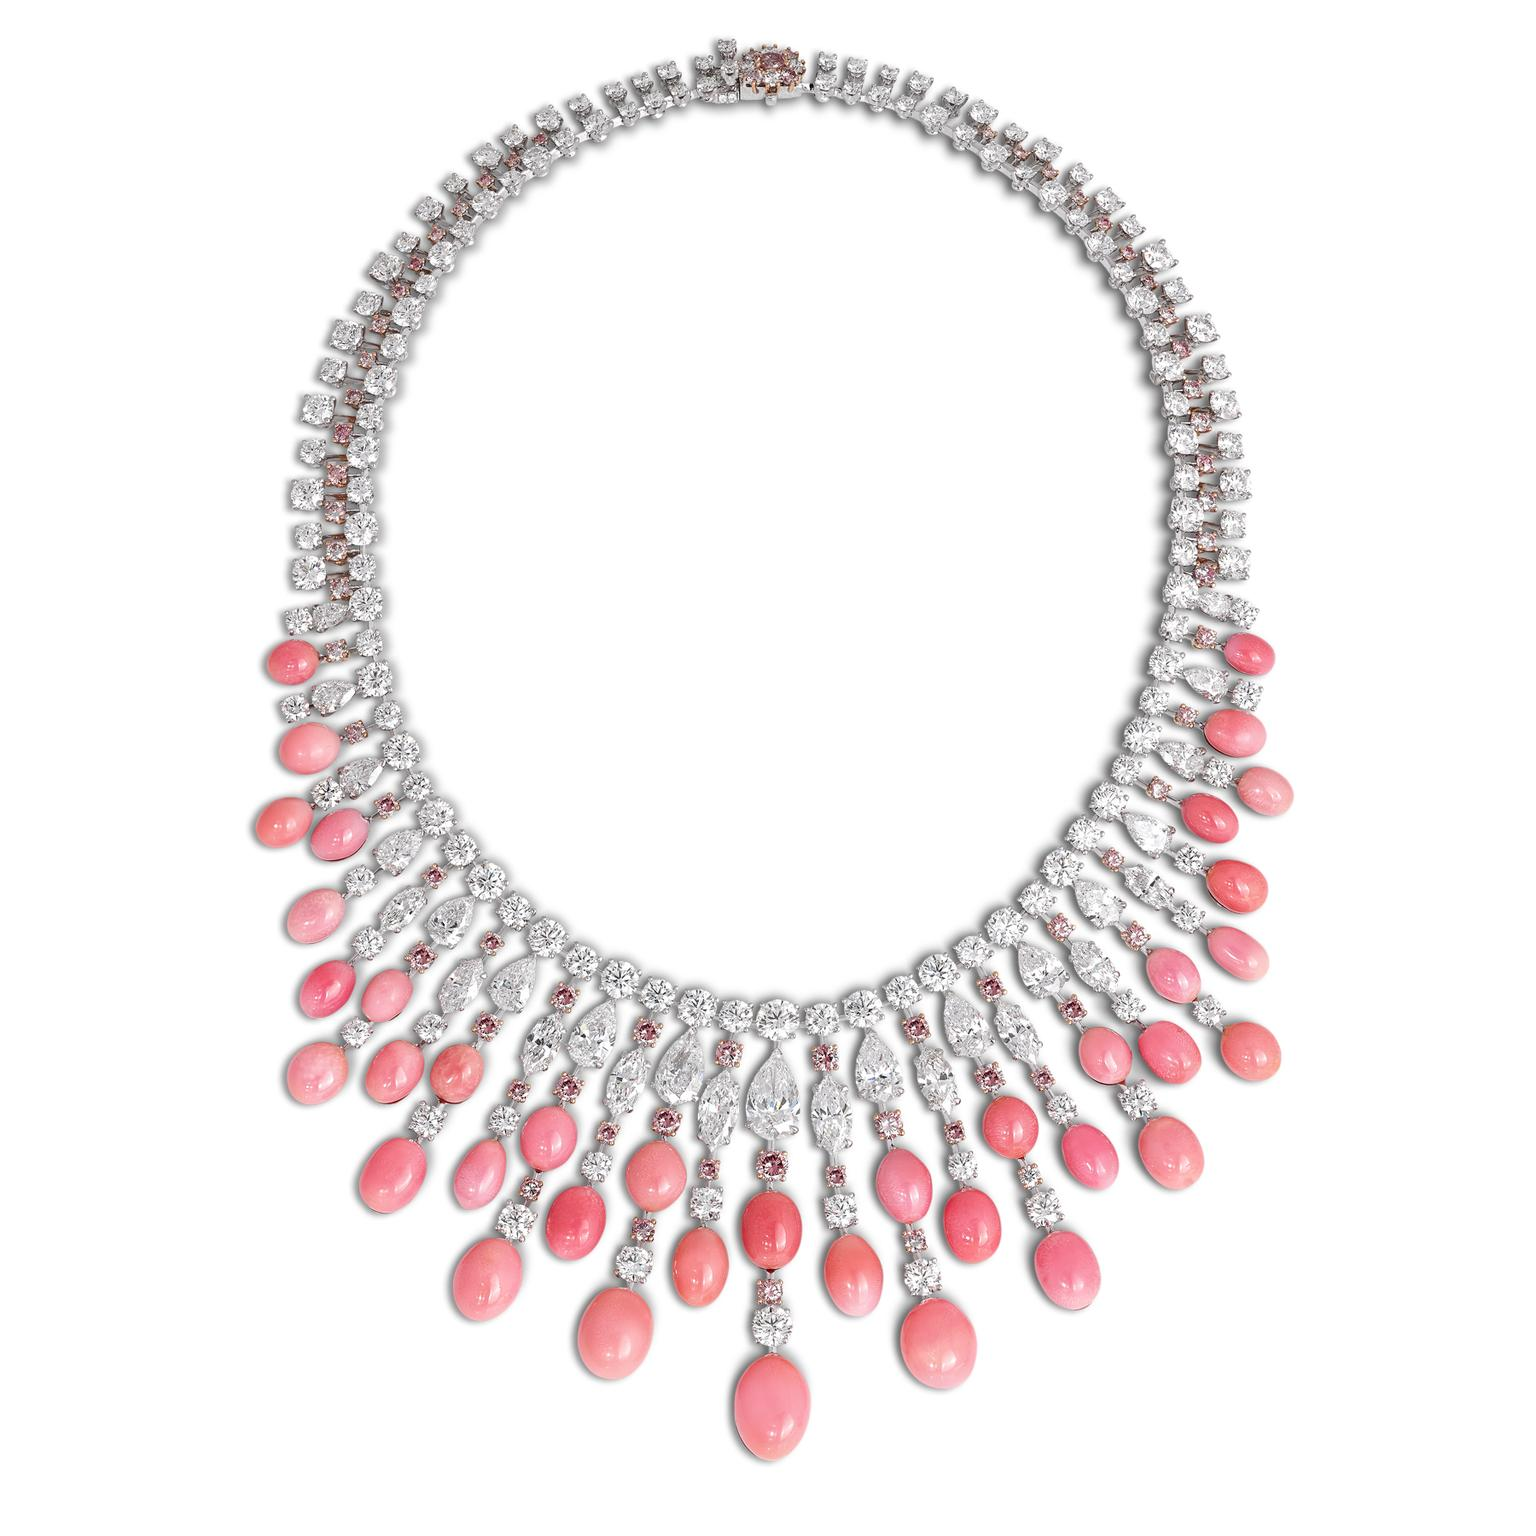 David Morris conch pearl necklace